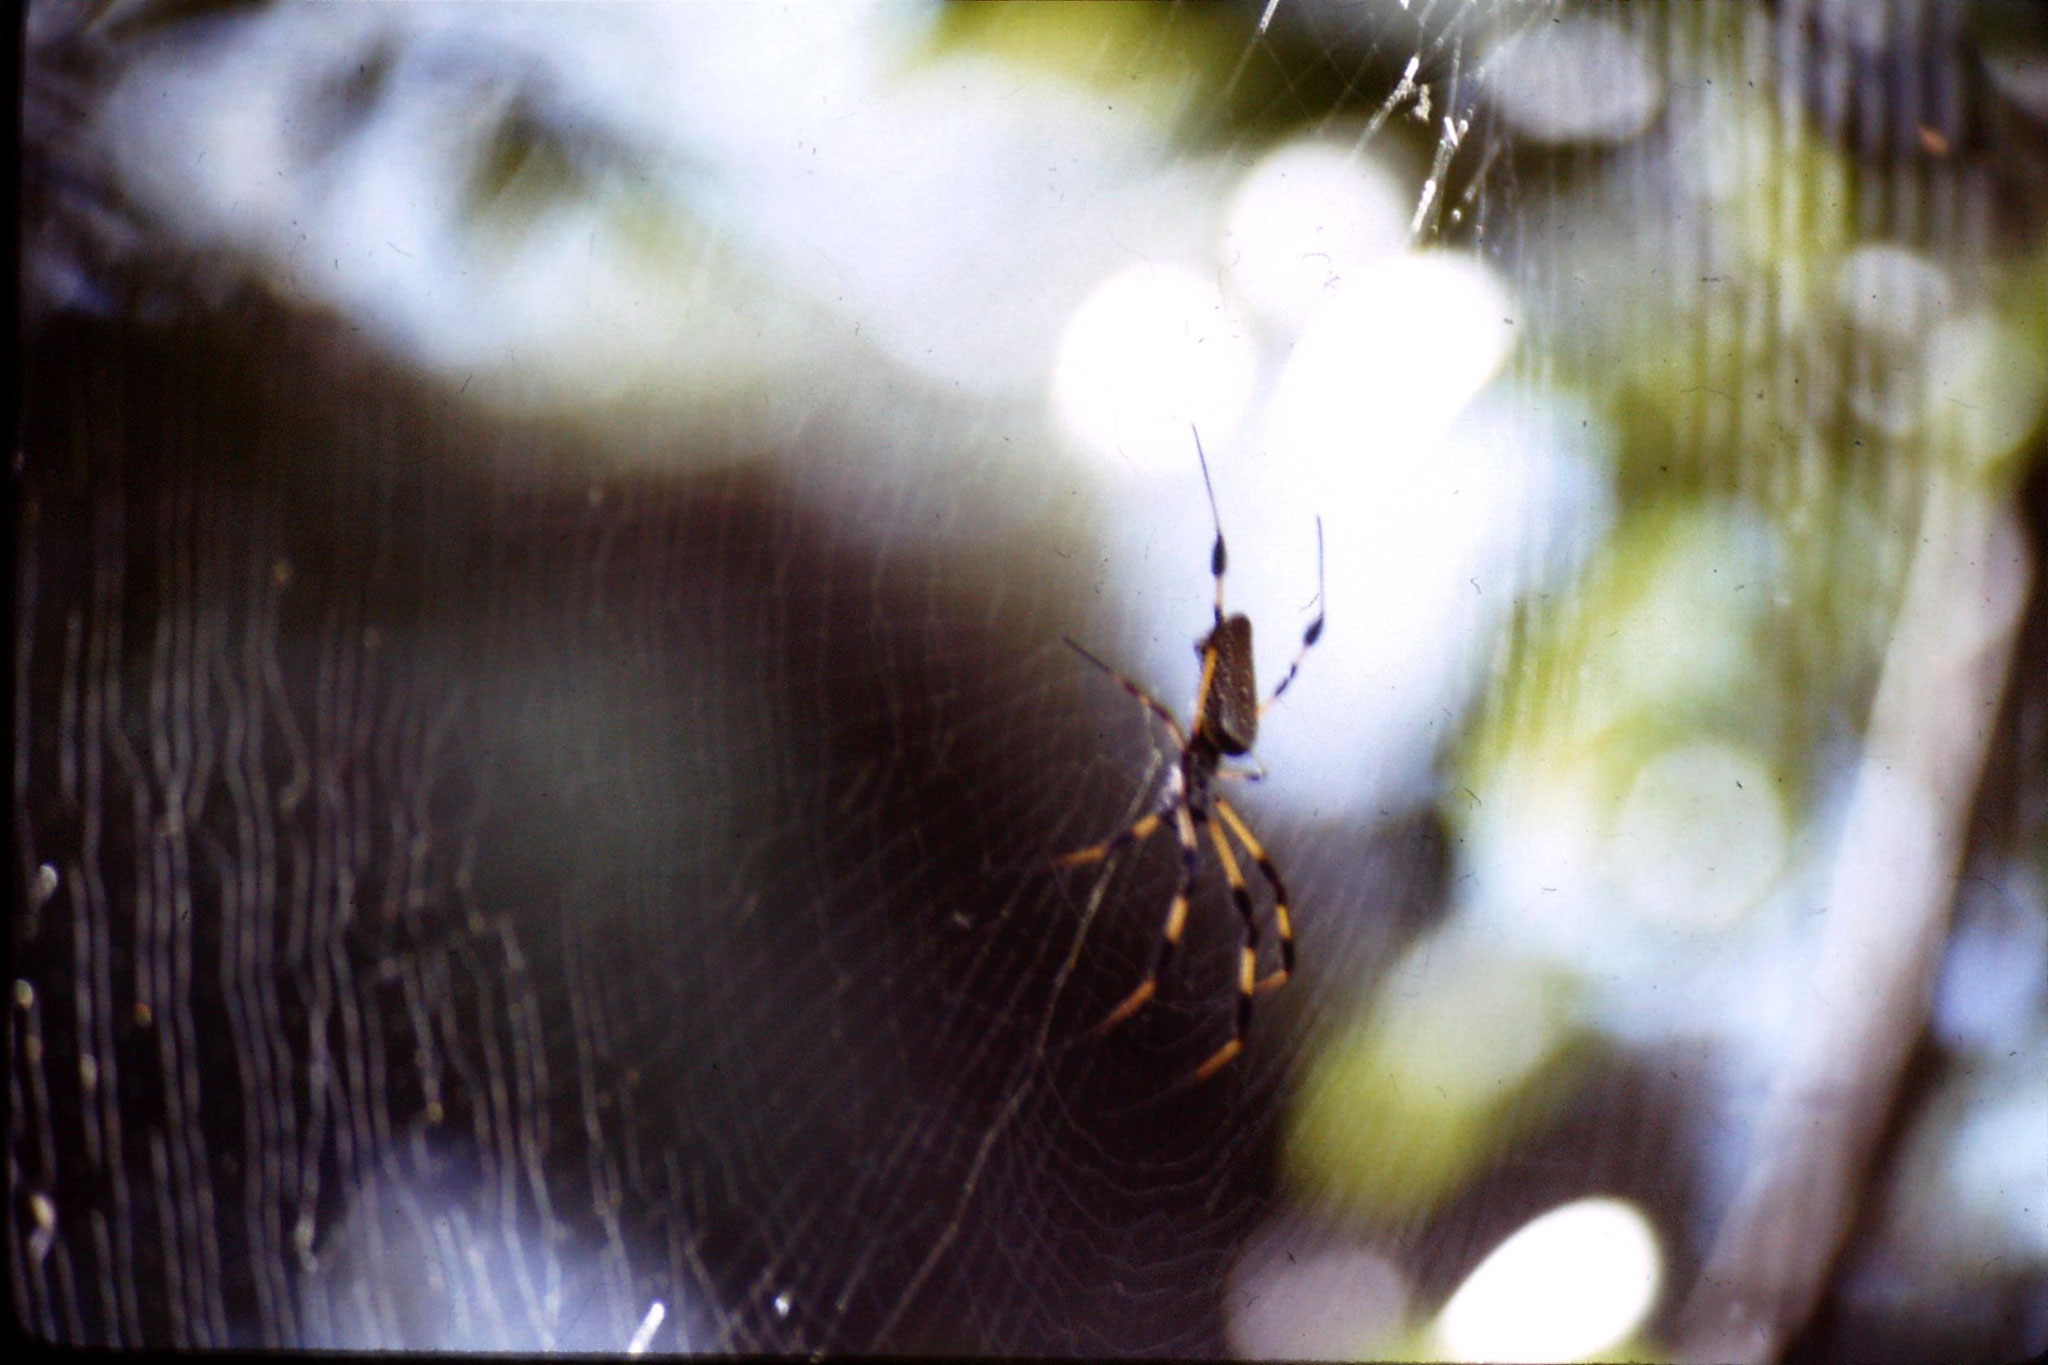 21/12/1990: 9: Everglades, Golden Orb spider